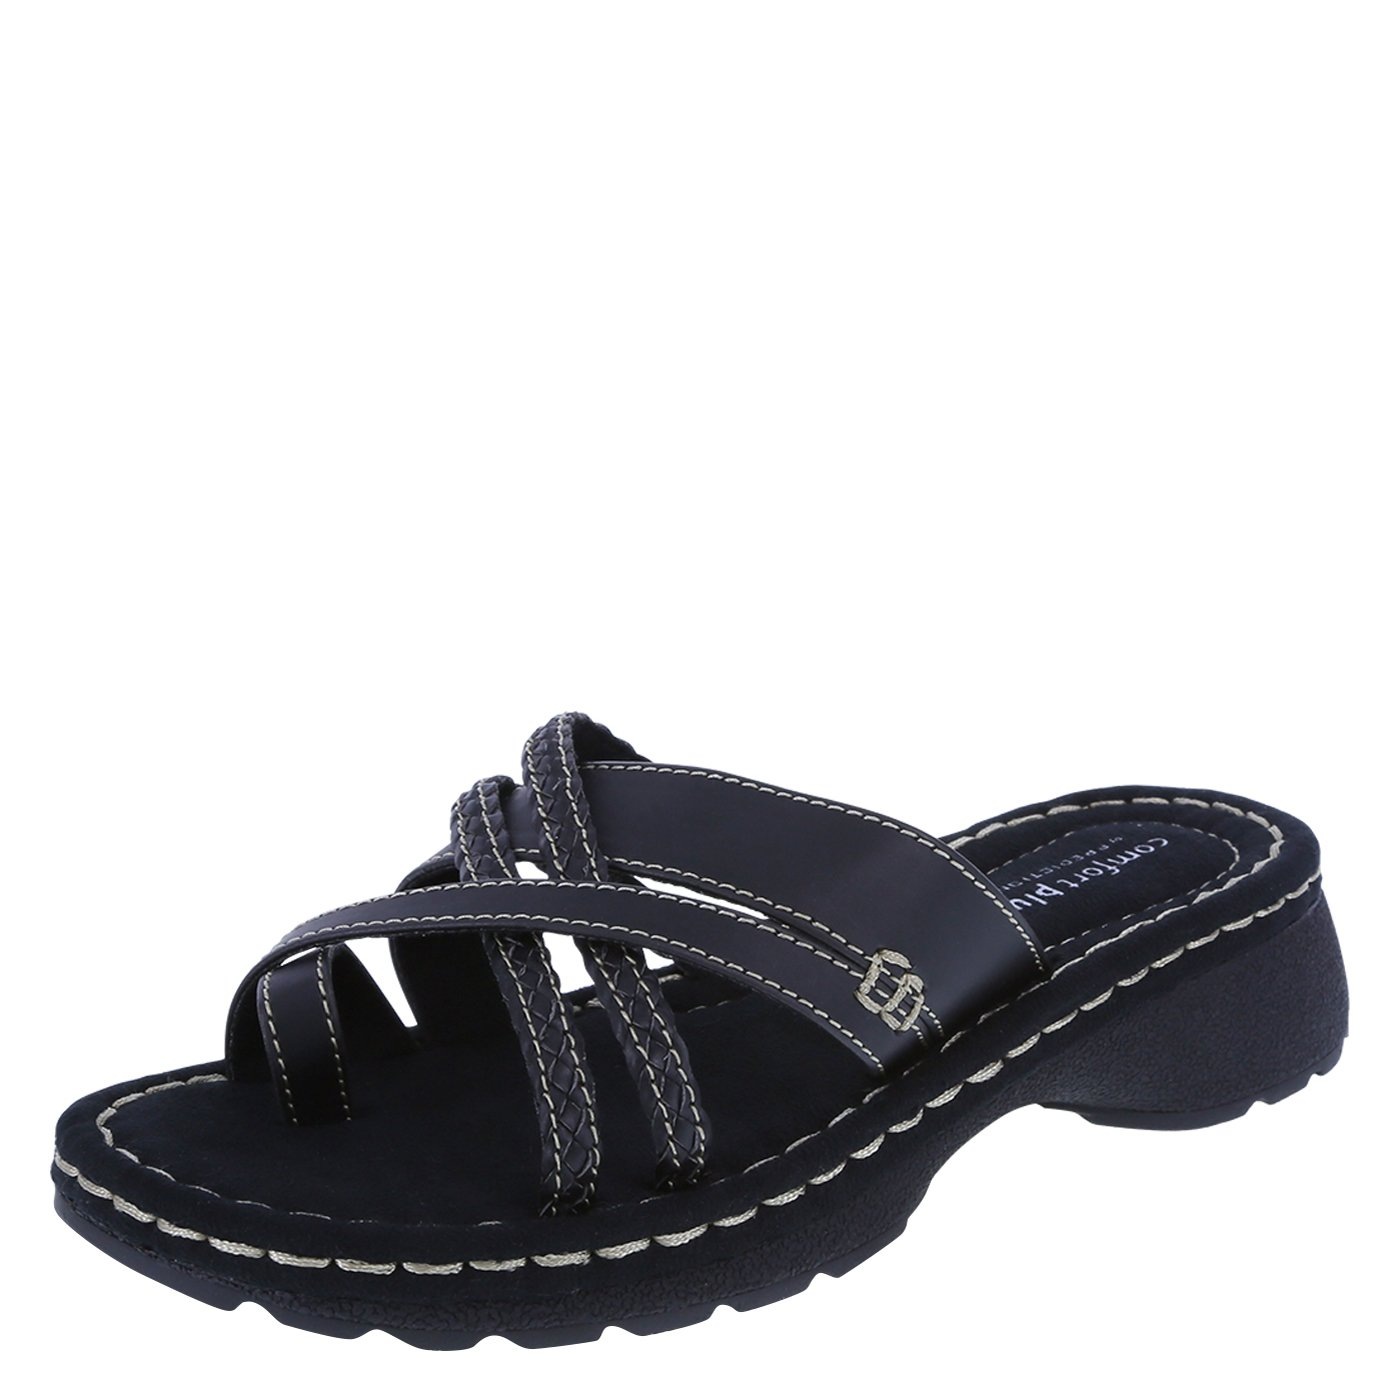 Predictions Comfort Plus by Black Women's Spruce Low Wedge 7.5 Wide